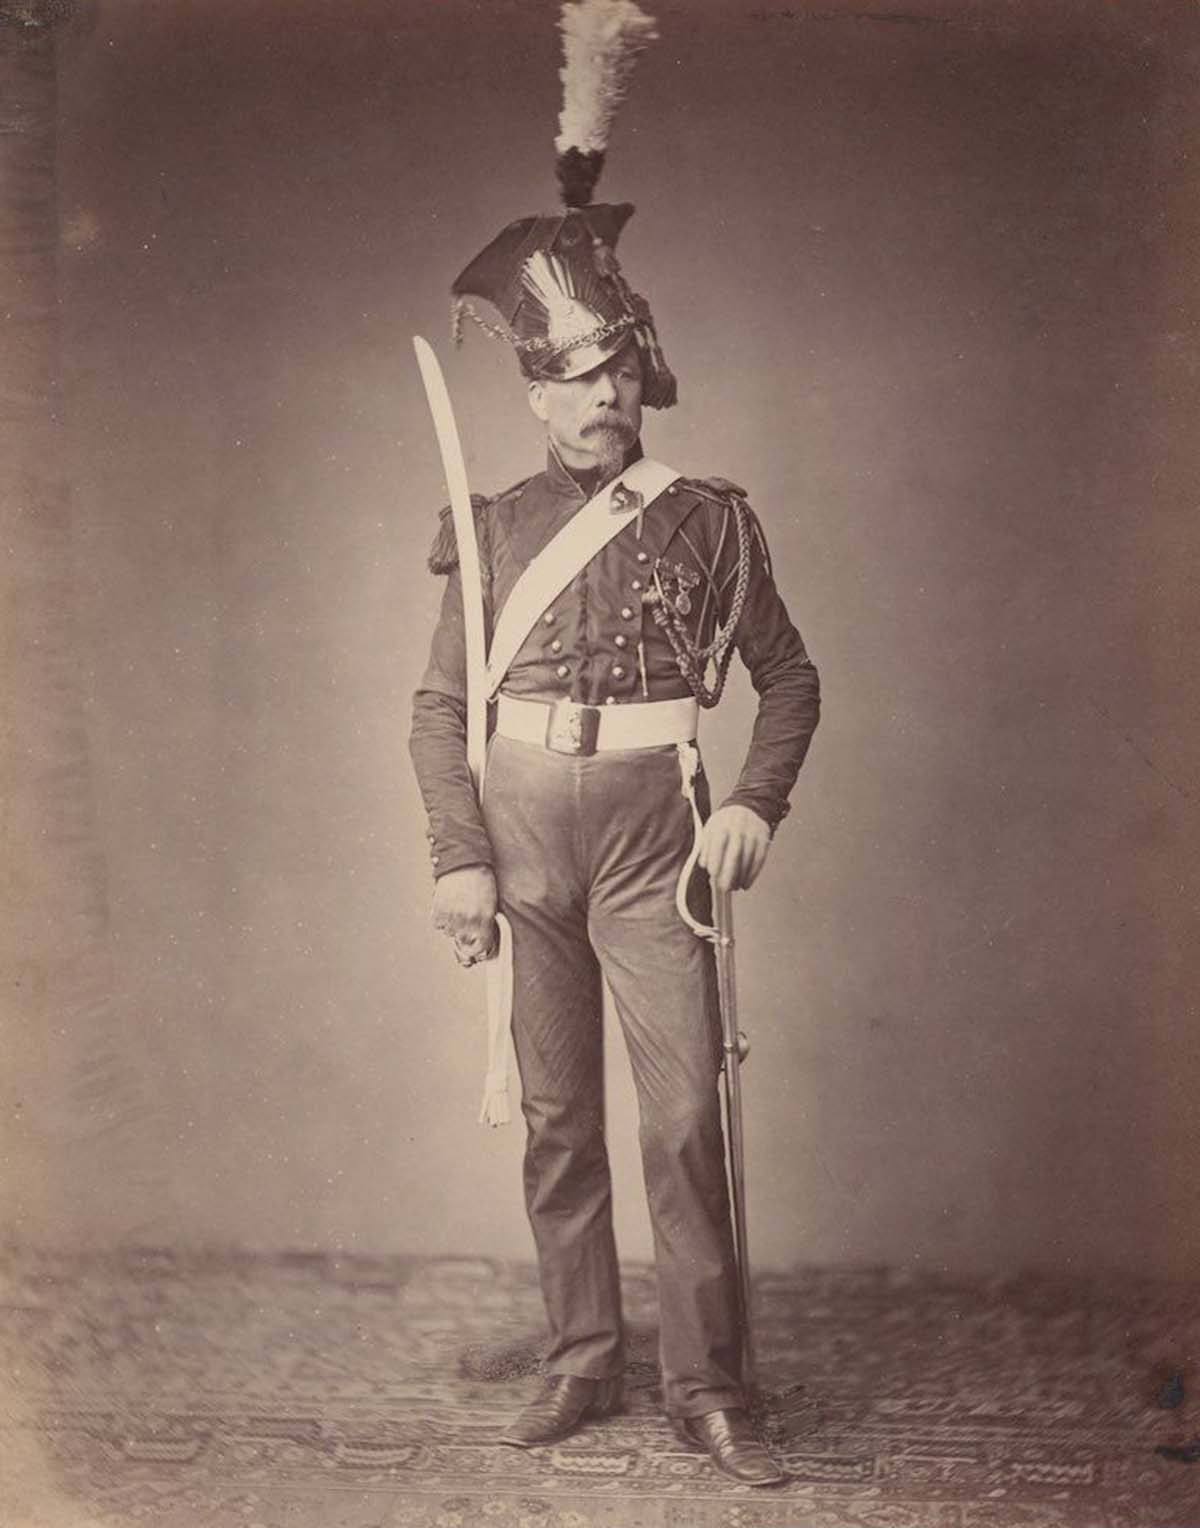 Monsieur. Verlinde of the 2nd Lancers.